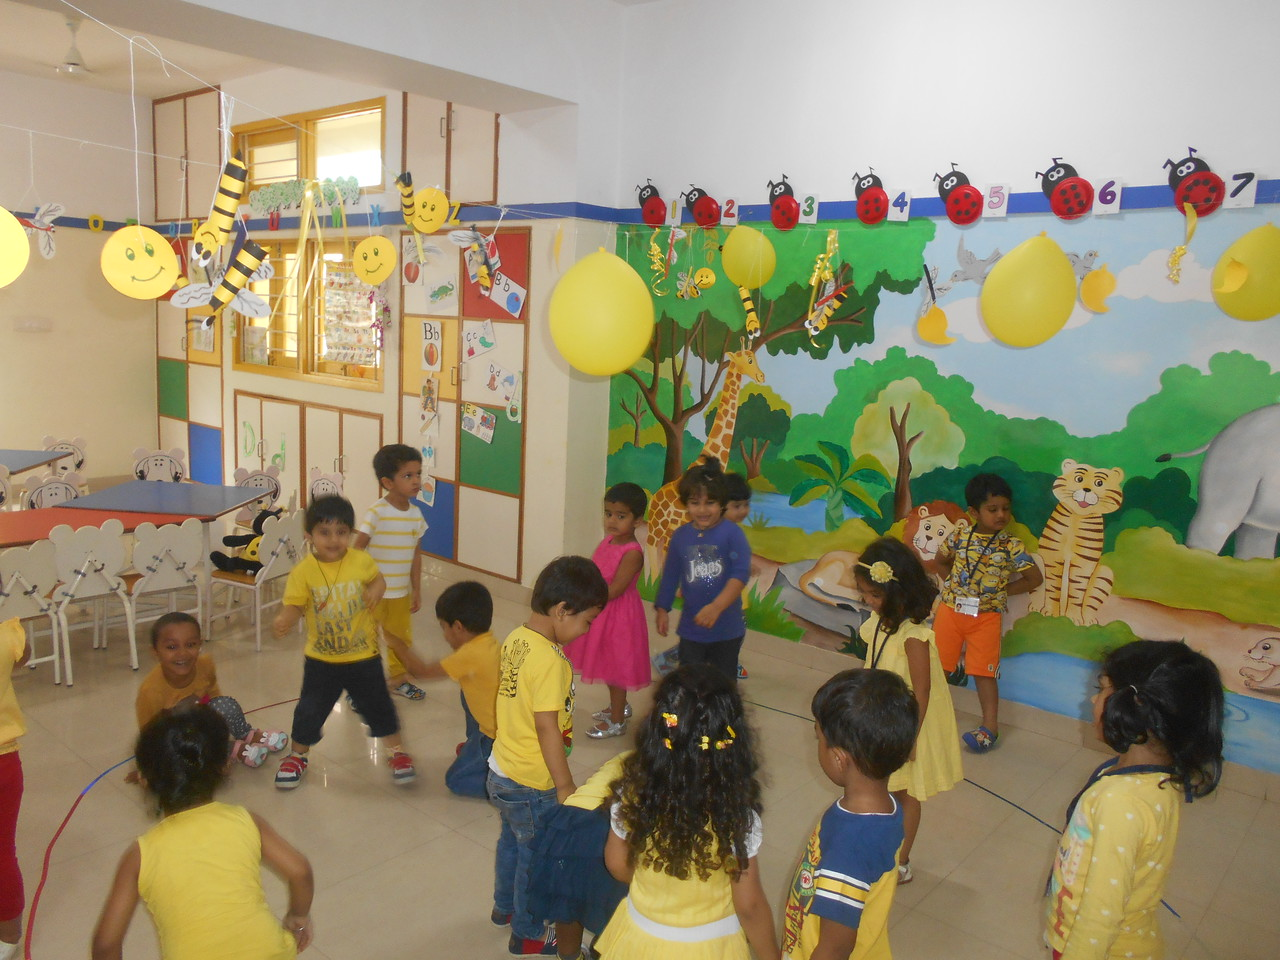 LOOK!! WE ARE ALL DRESSED IN YELLOW (6)